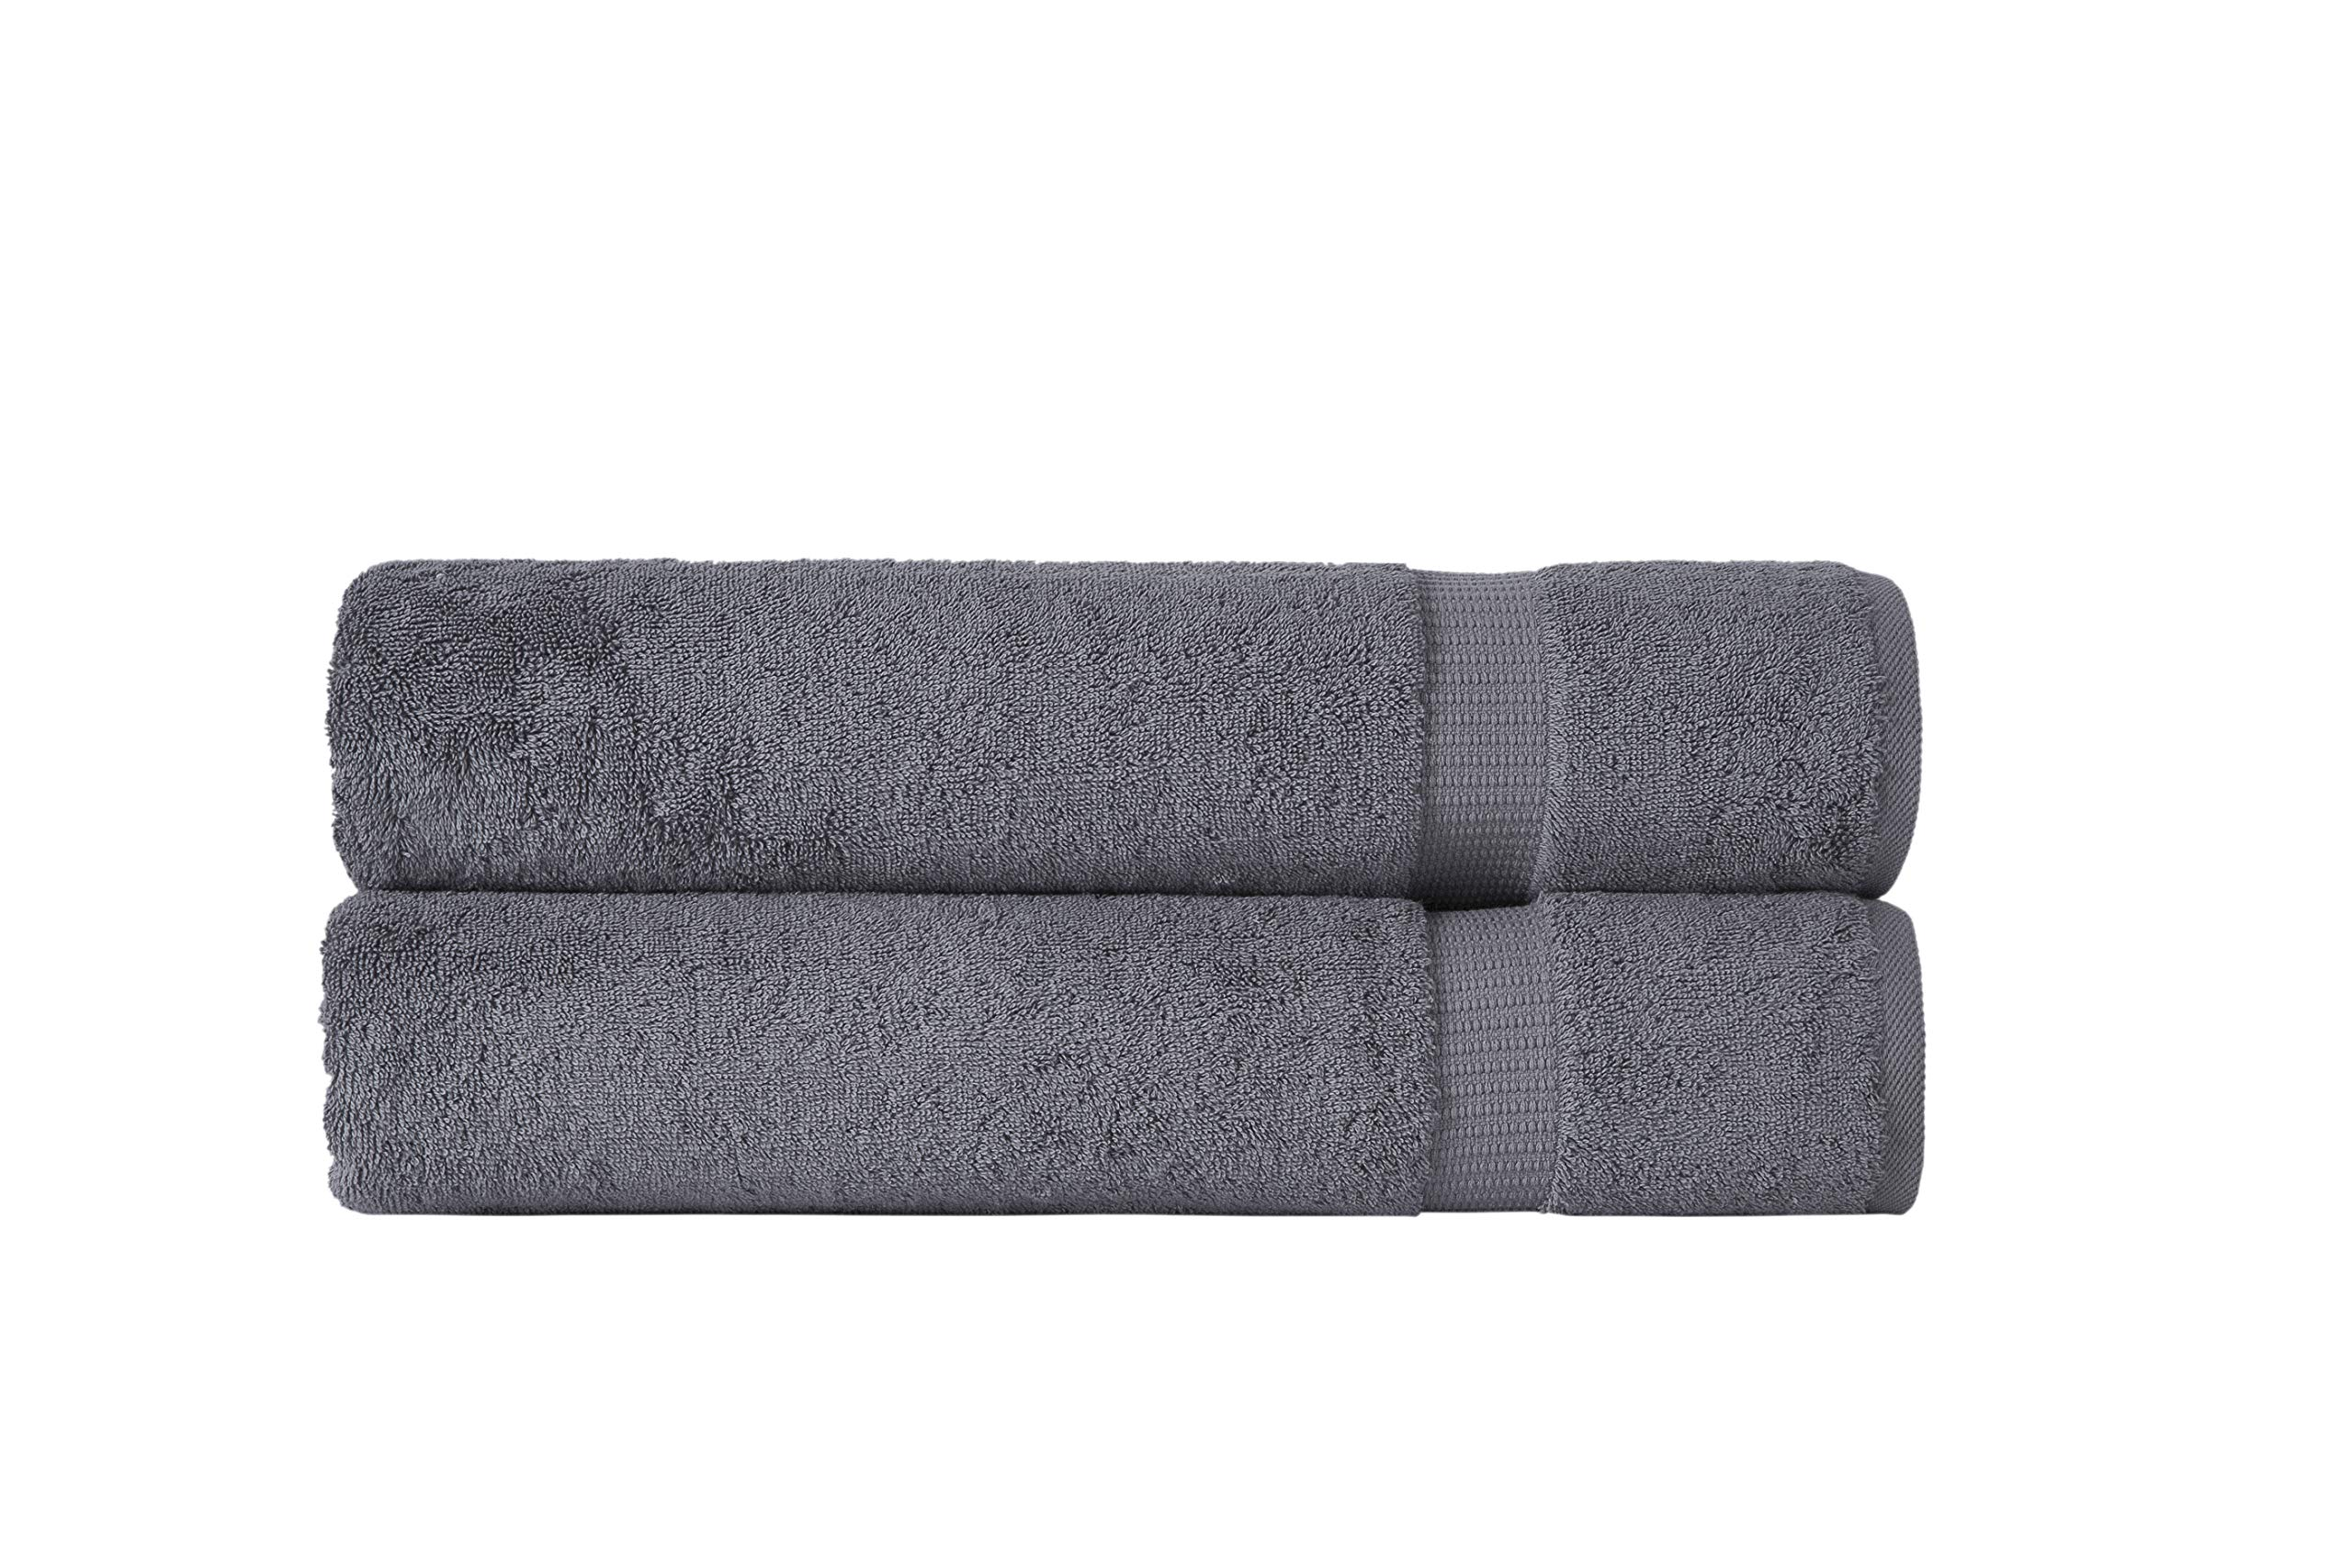 SALBAKOS Luxury Hotel & Spa Turkish Cotton 2-Piece Eco-Friendly Bath Sheet Set 35 x 70 Inch, Gray